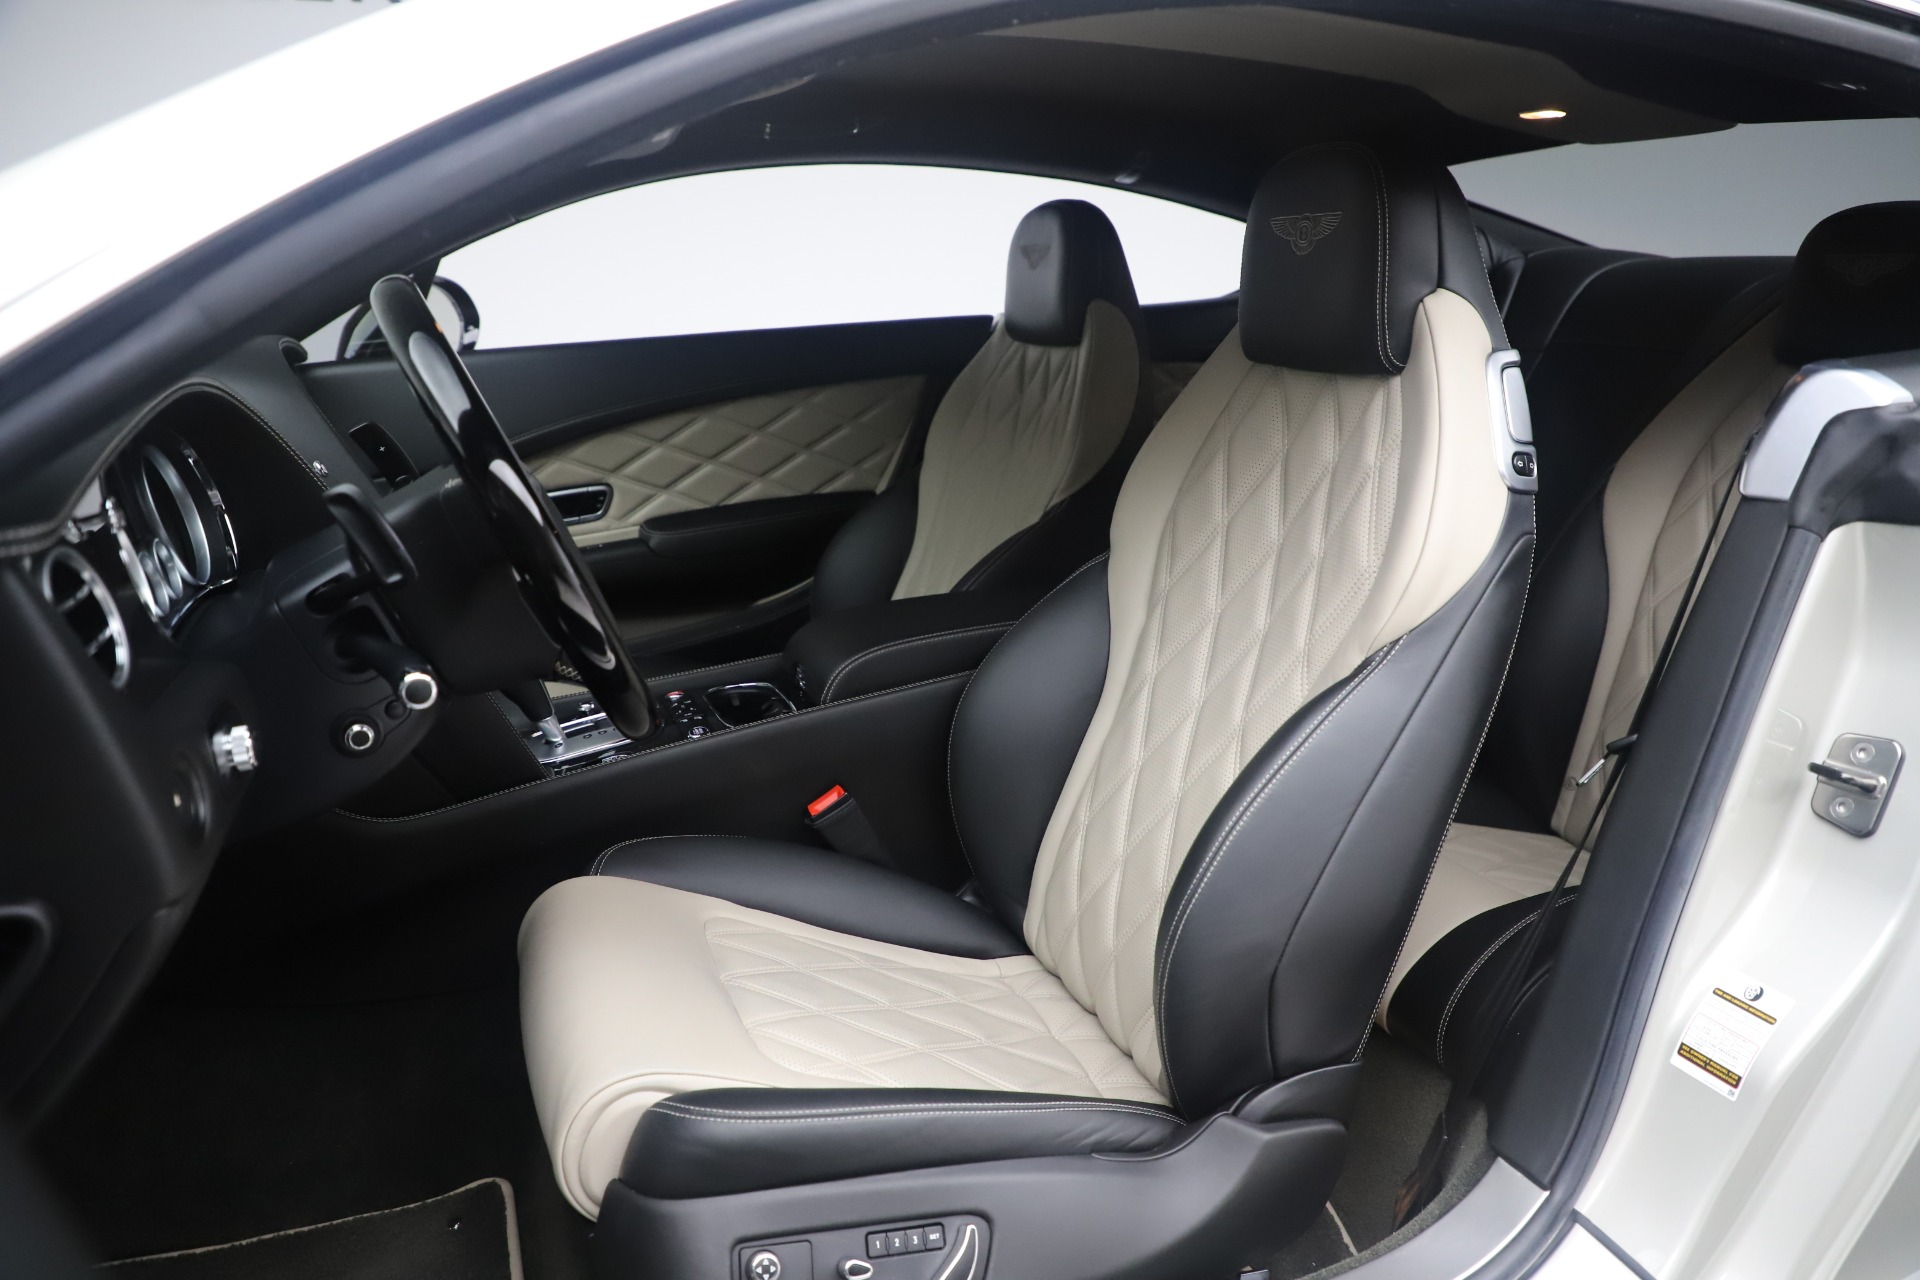 Used 2014 Bentley Continental GT V8 S For Sale In Westport, CT 3541_p19